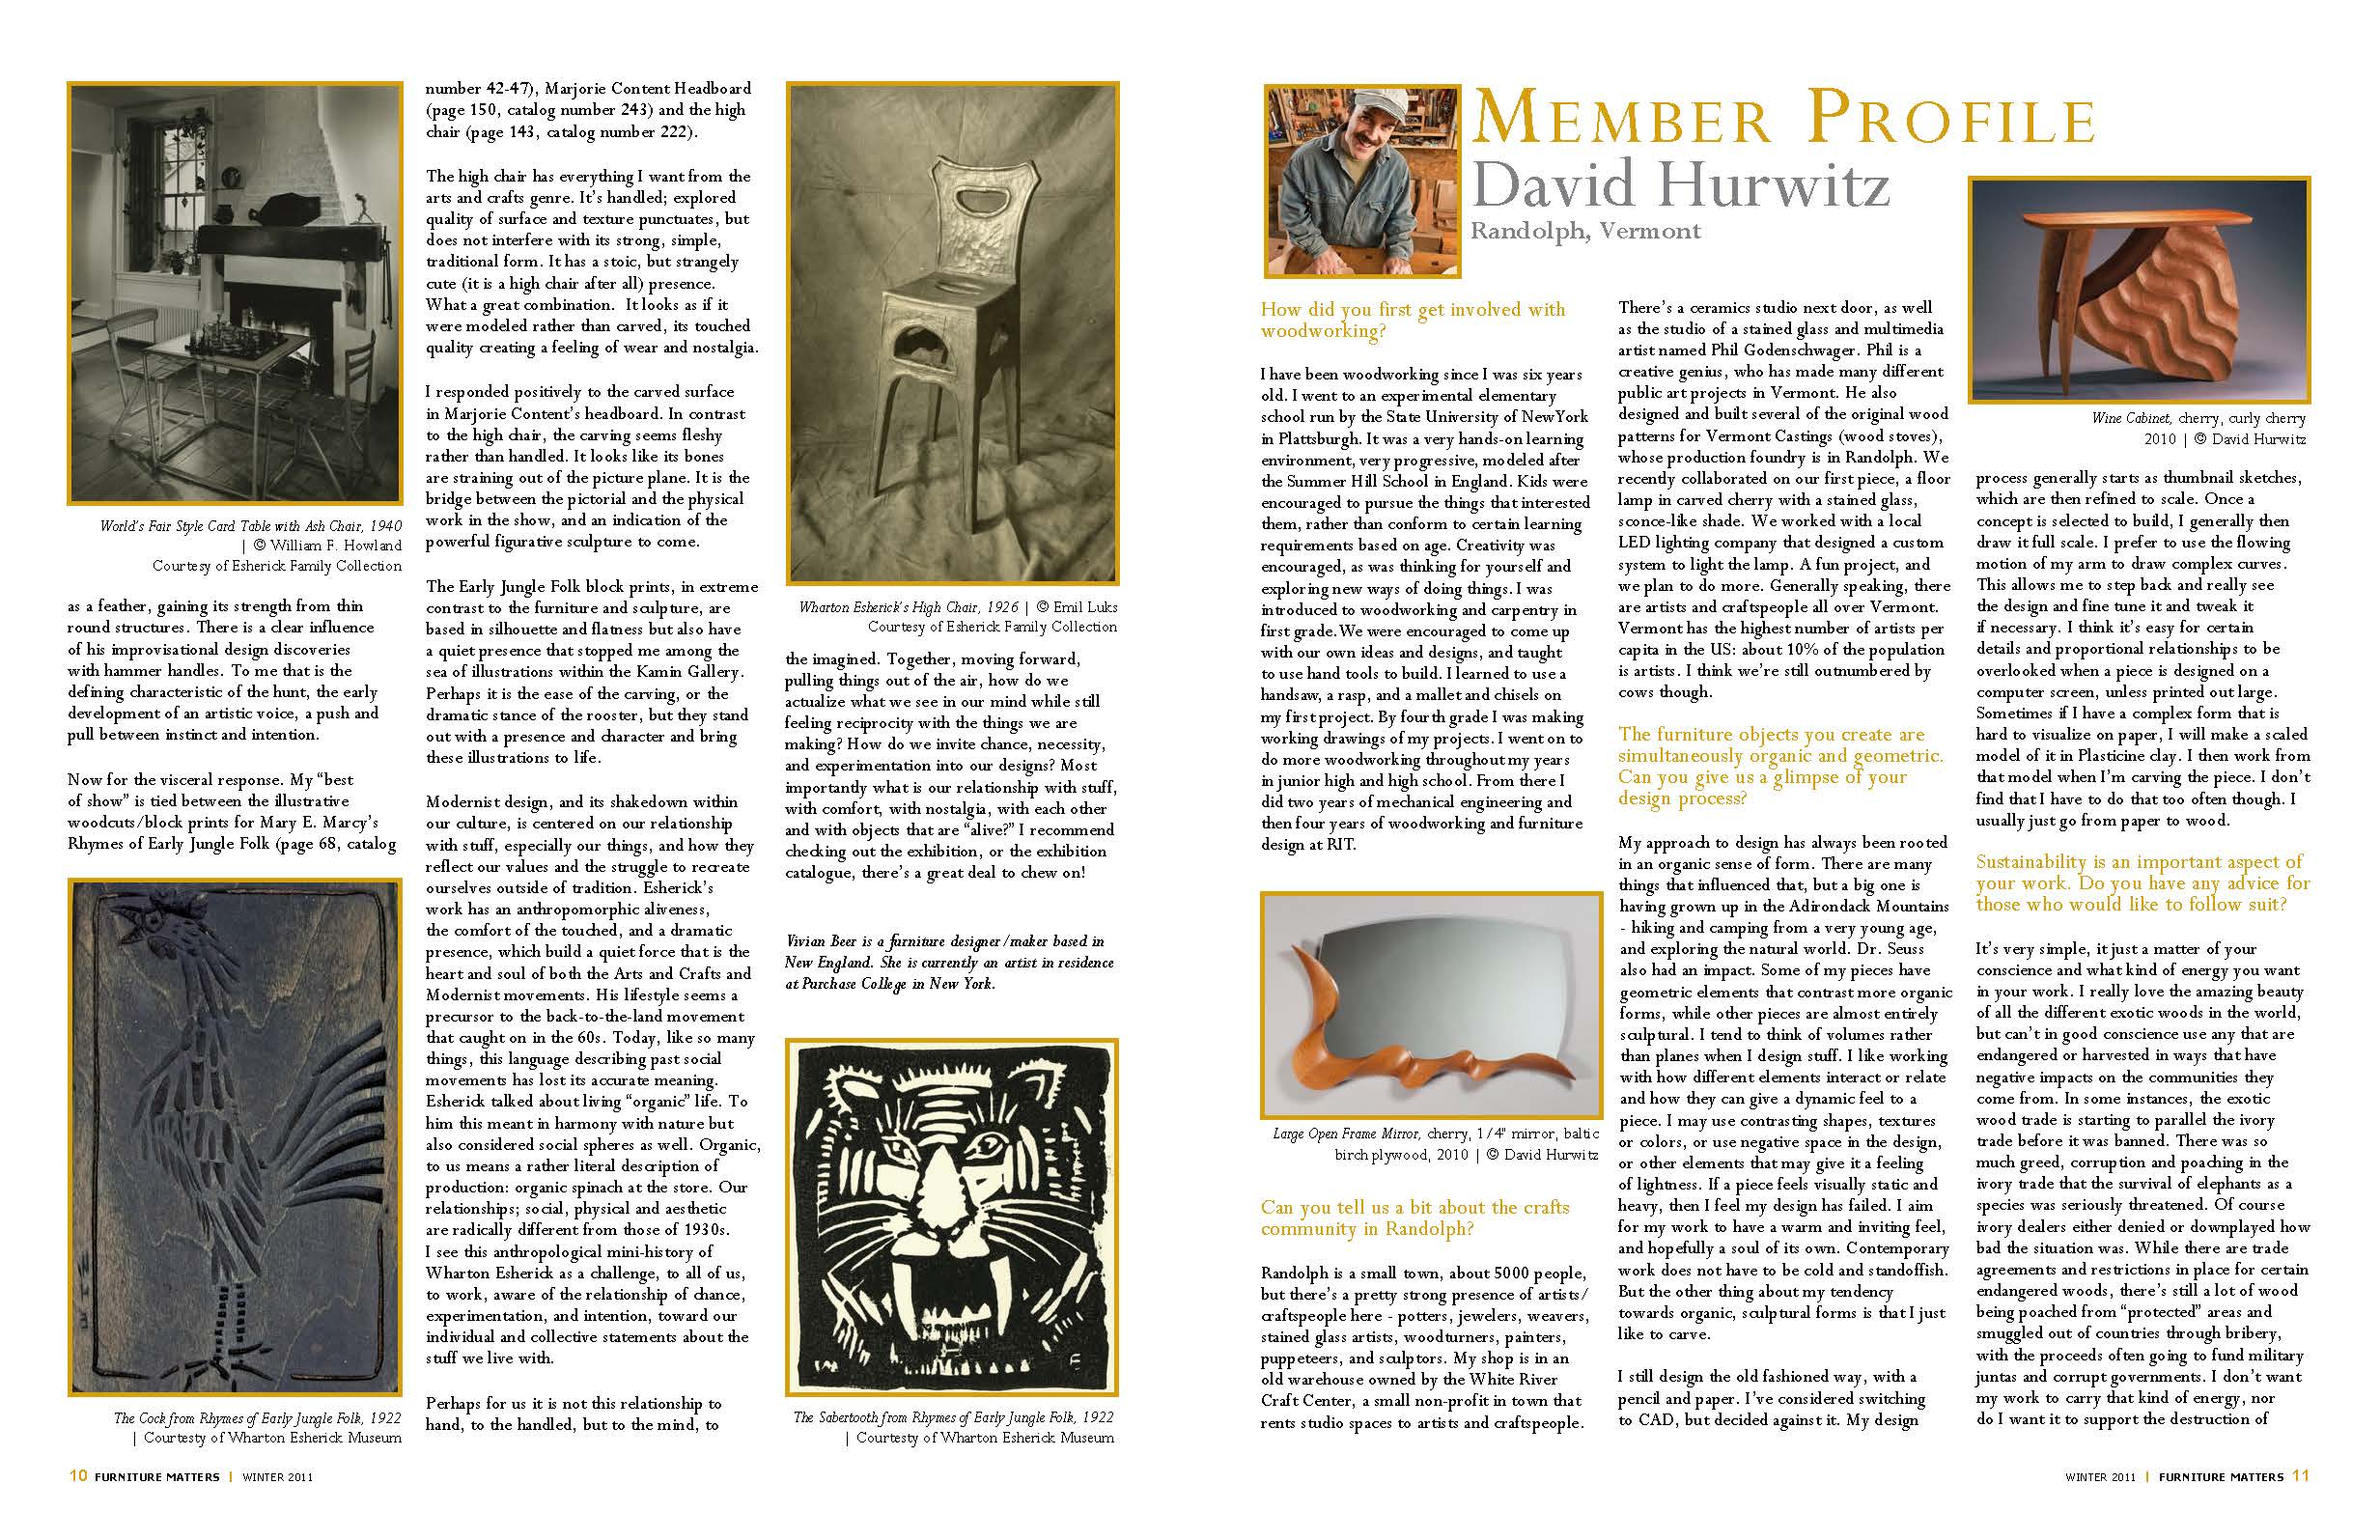 Warton Esherick and the Hunt- review by Vivian Beer in Furniture Matters_Page_6.jpg